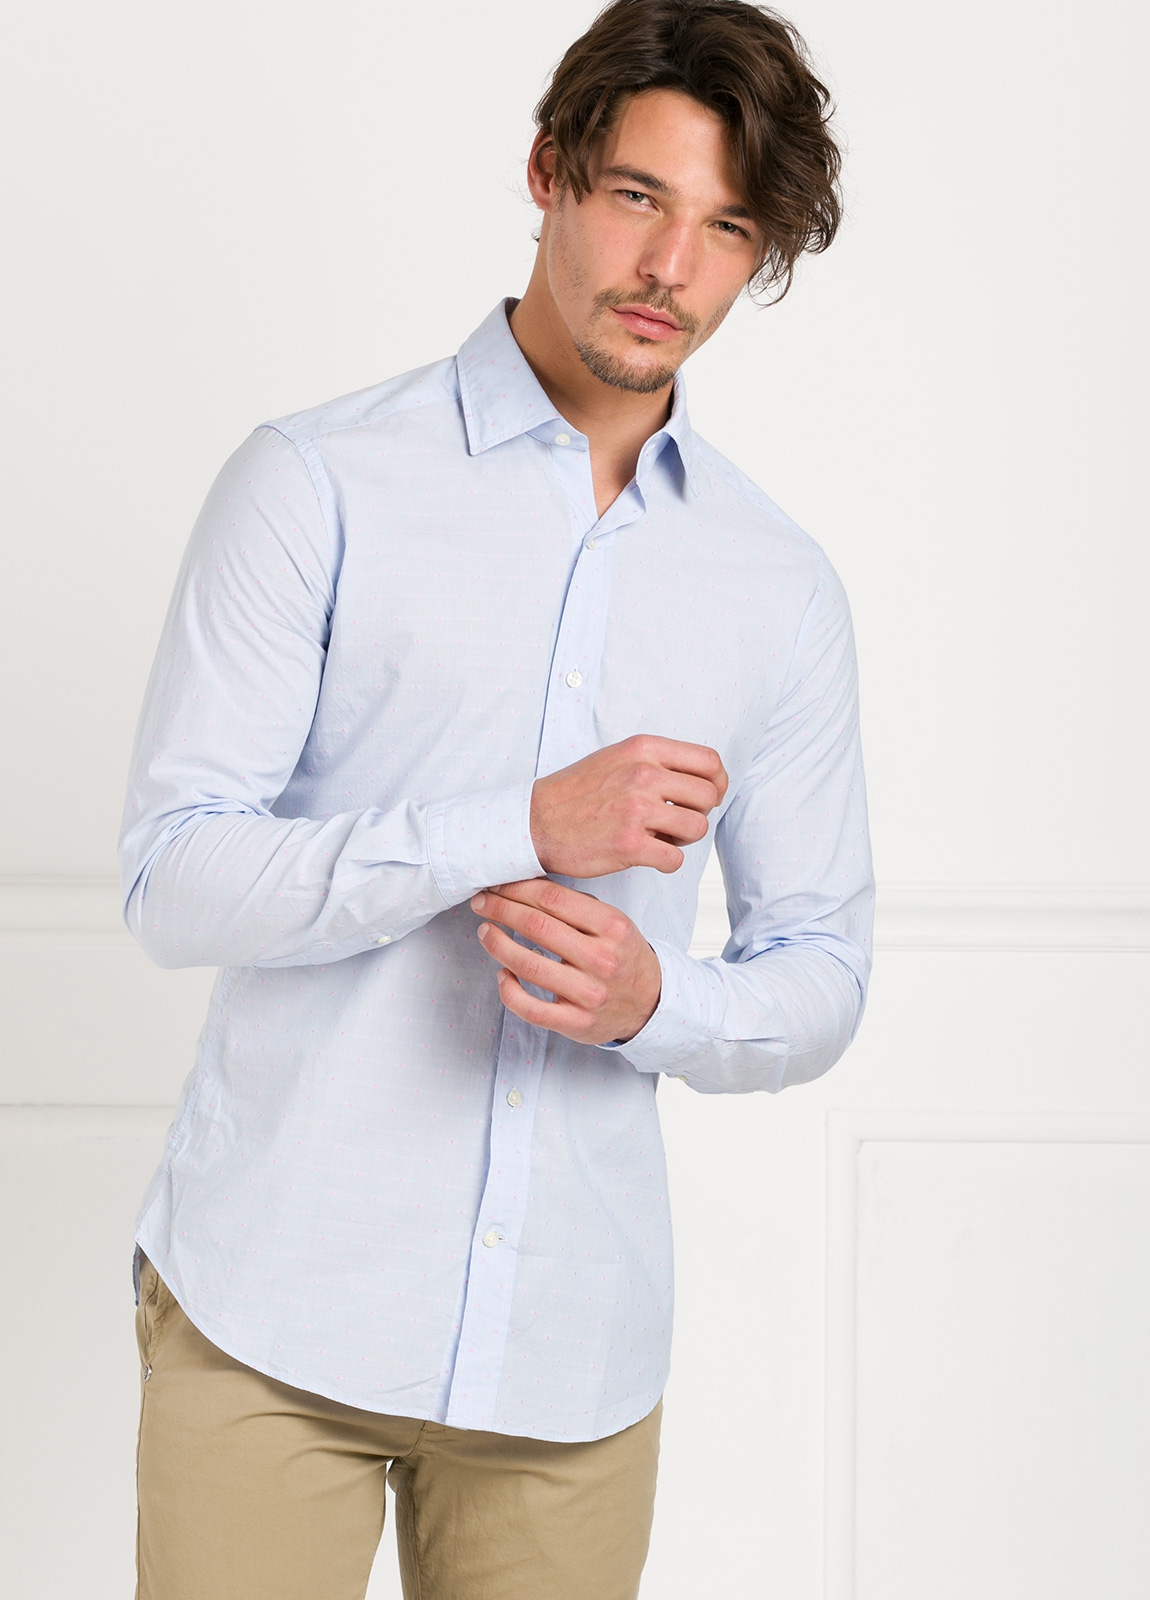 Camisa Leisure Wear SLIM FIT modelo PORTO color celeste micro dibujo fantasia. 100% Algodón.